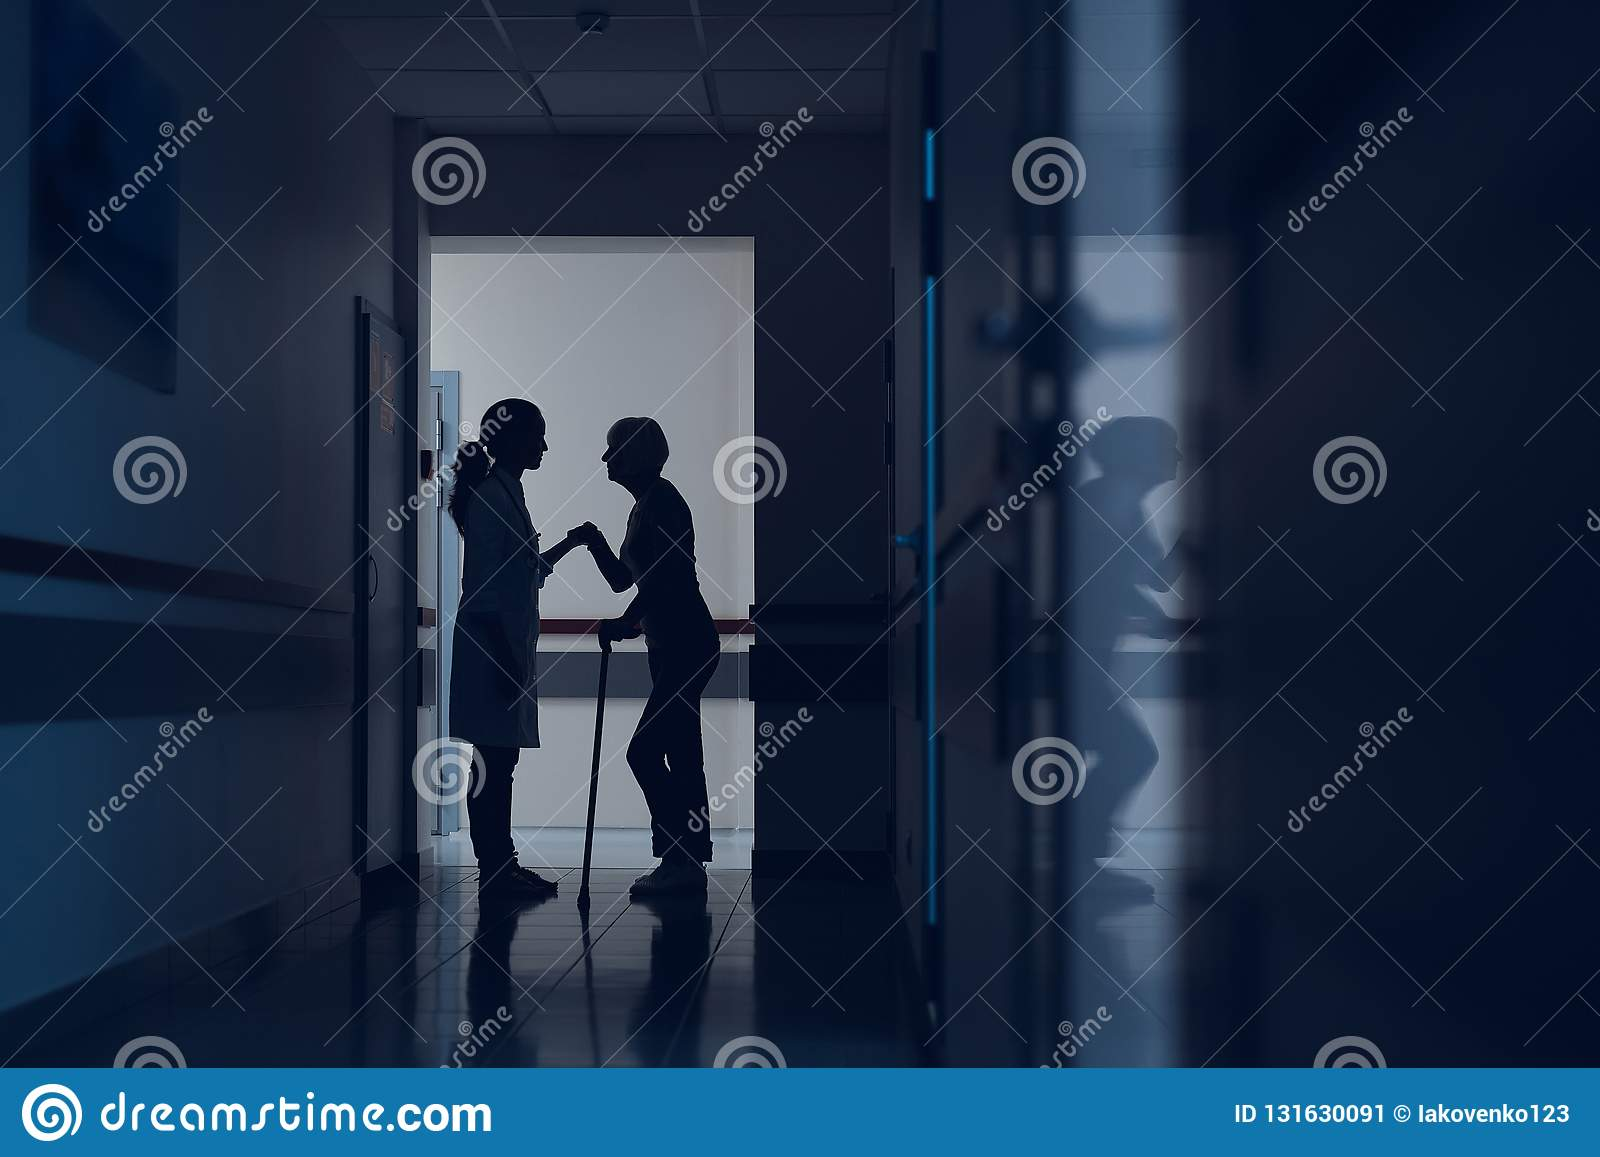 Lady is leaning on doctor and cane in hallway